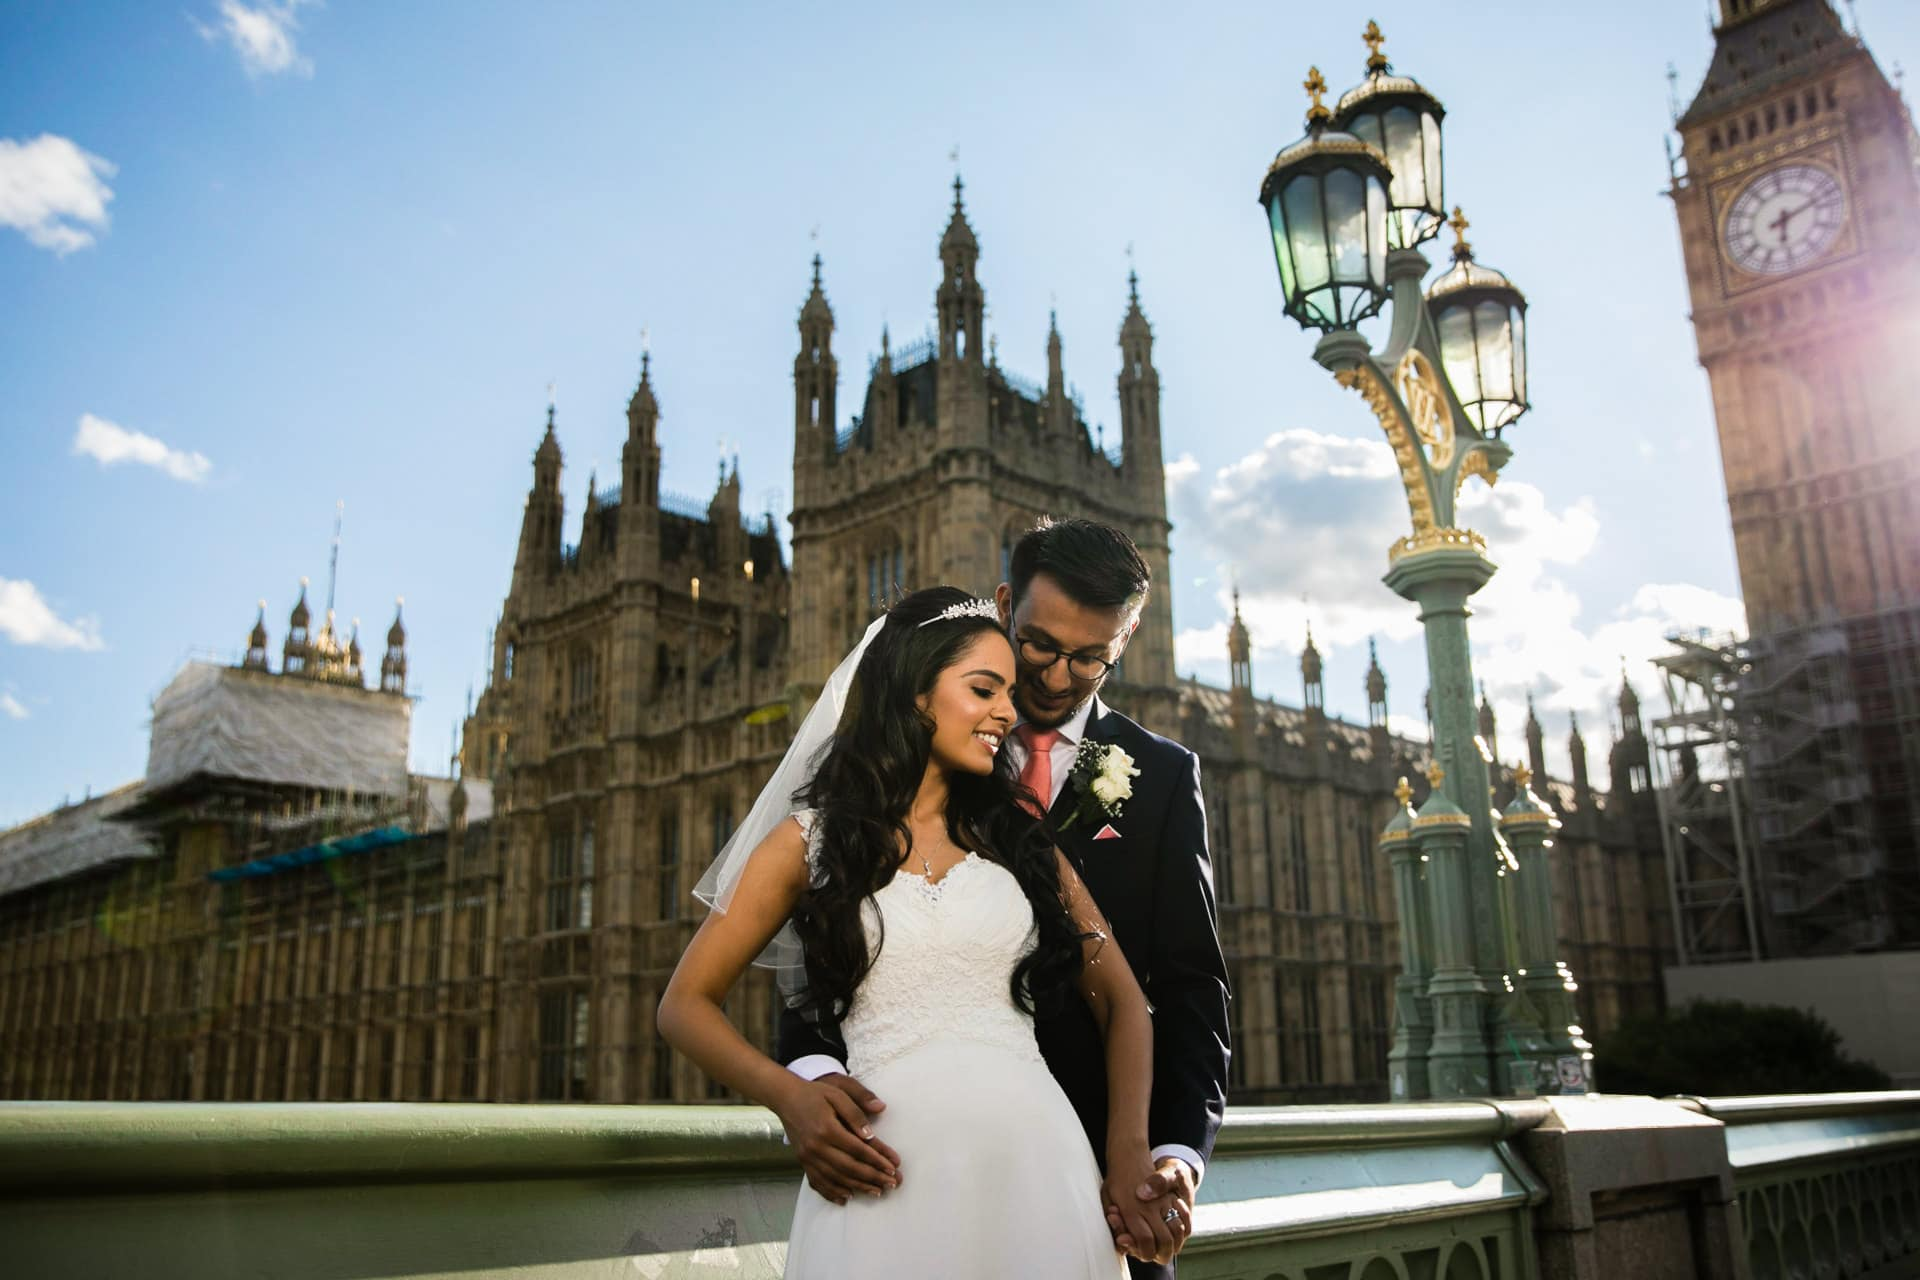 Wedding portrait outside Big Ben, London